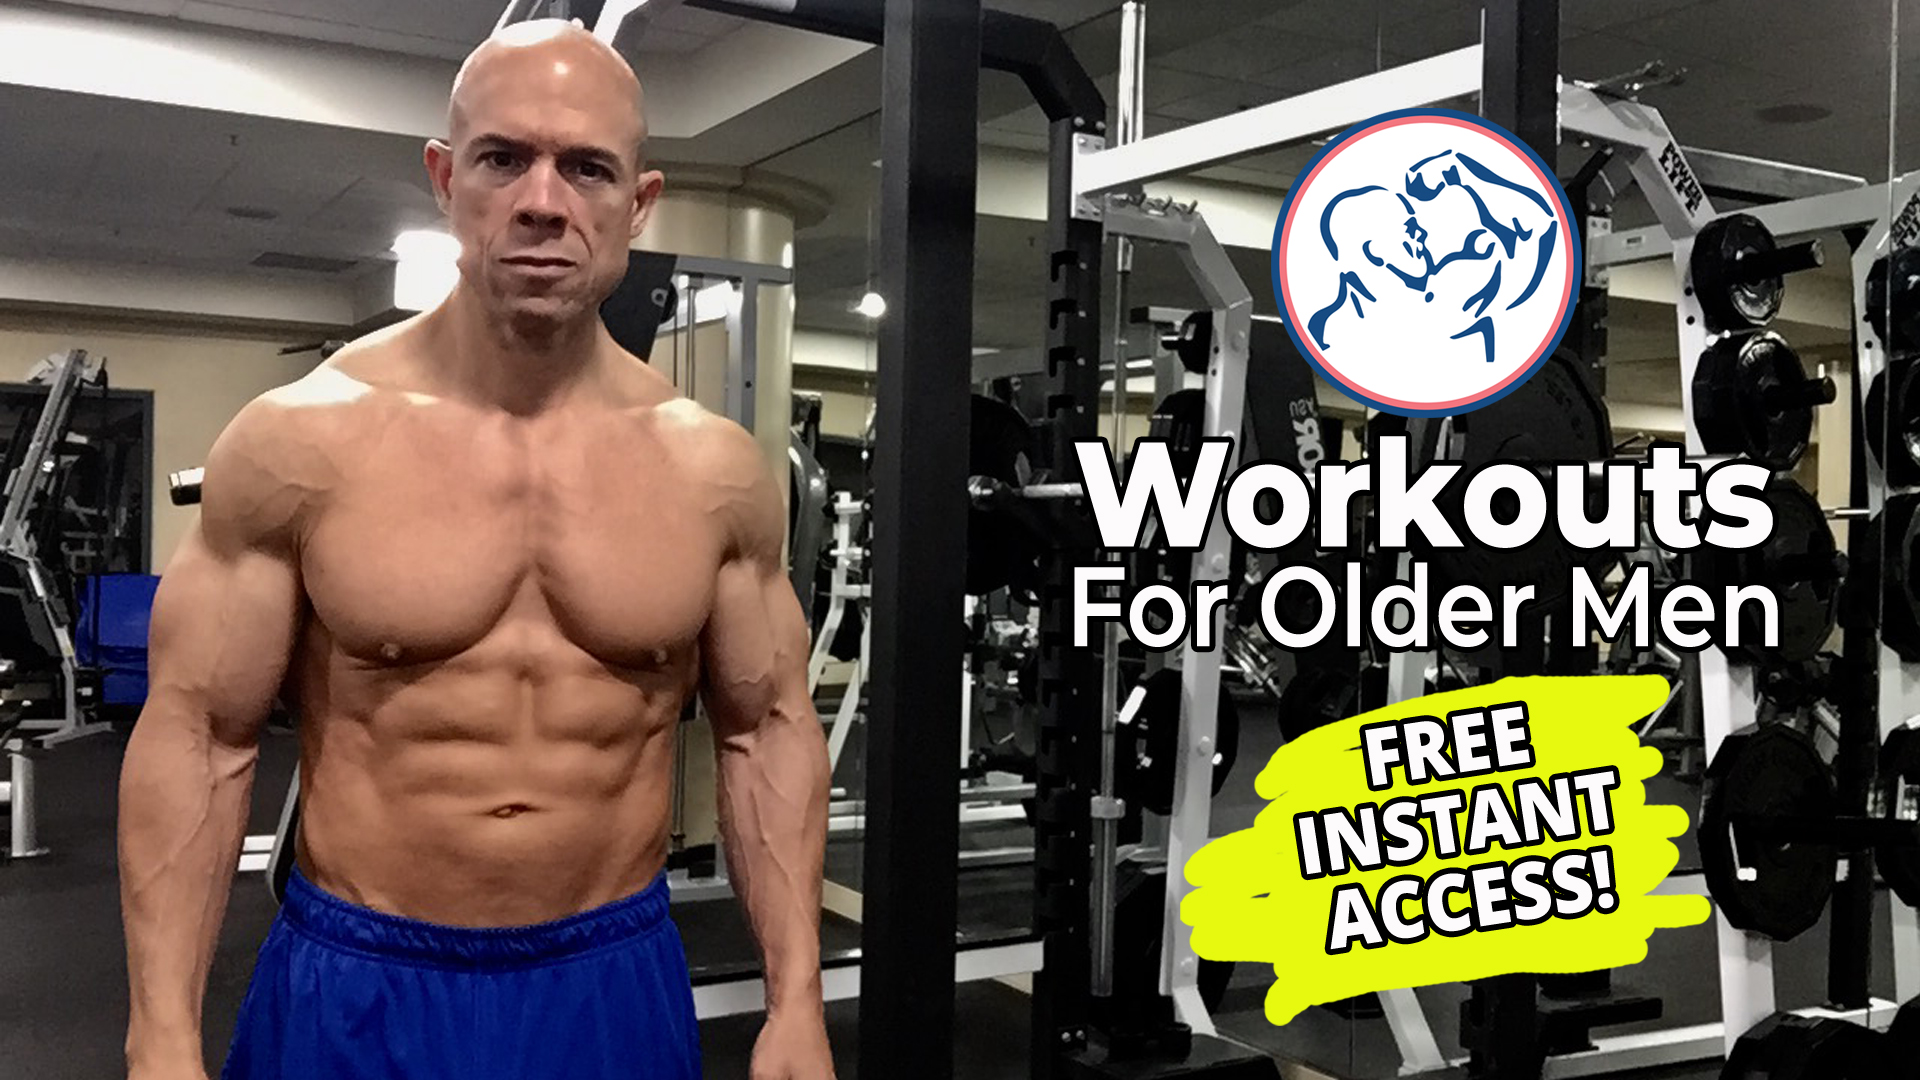 mf workouts for older men flash 2 How To Build Bigger Arms   Workouts For Older Men   Biceps, Triceps, and Forearms Workout